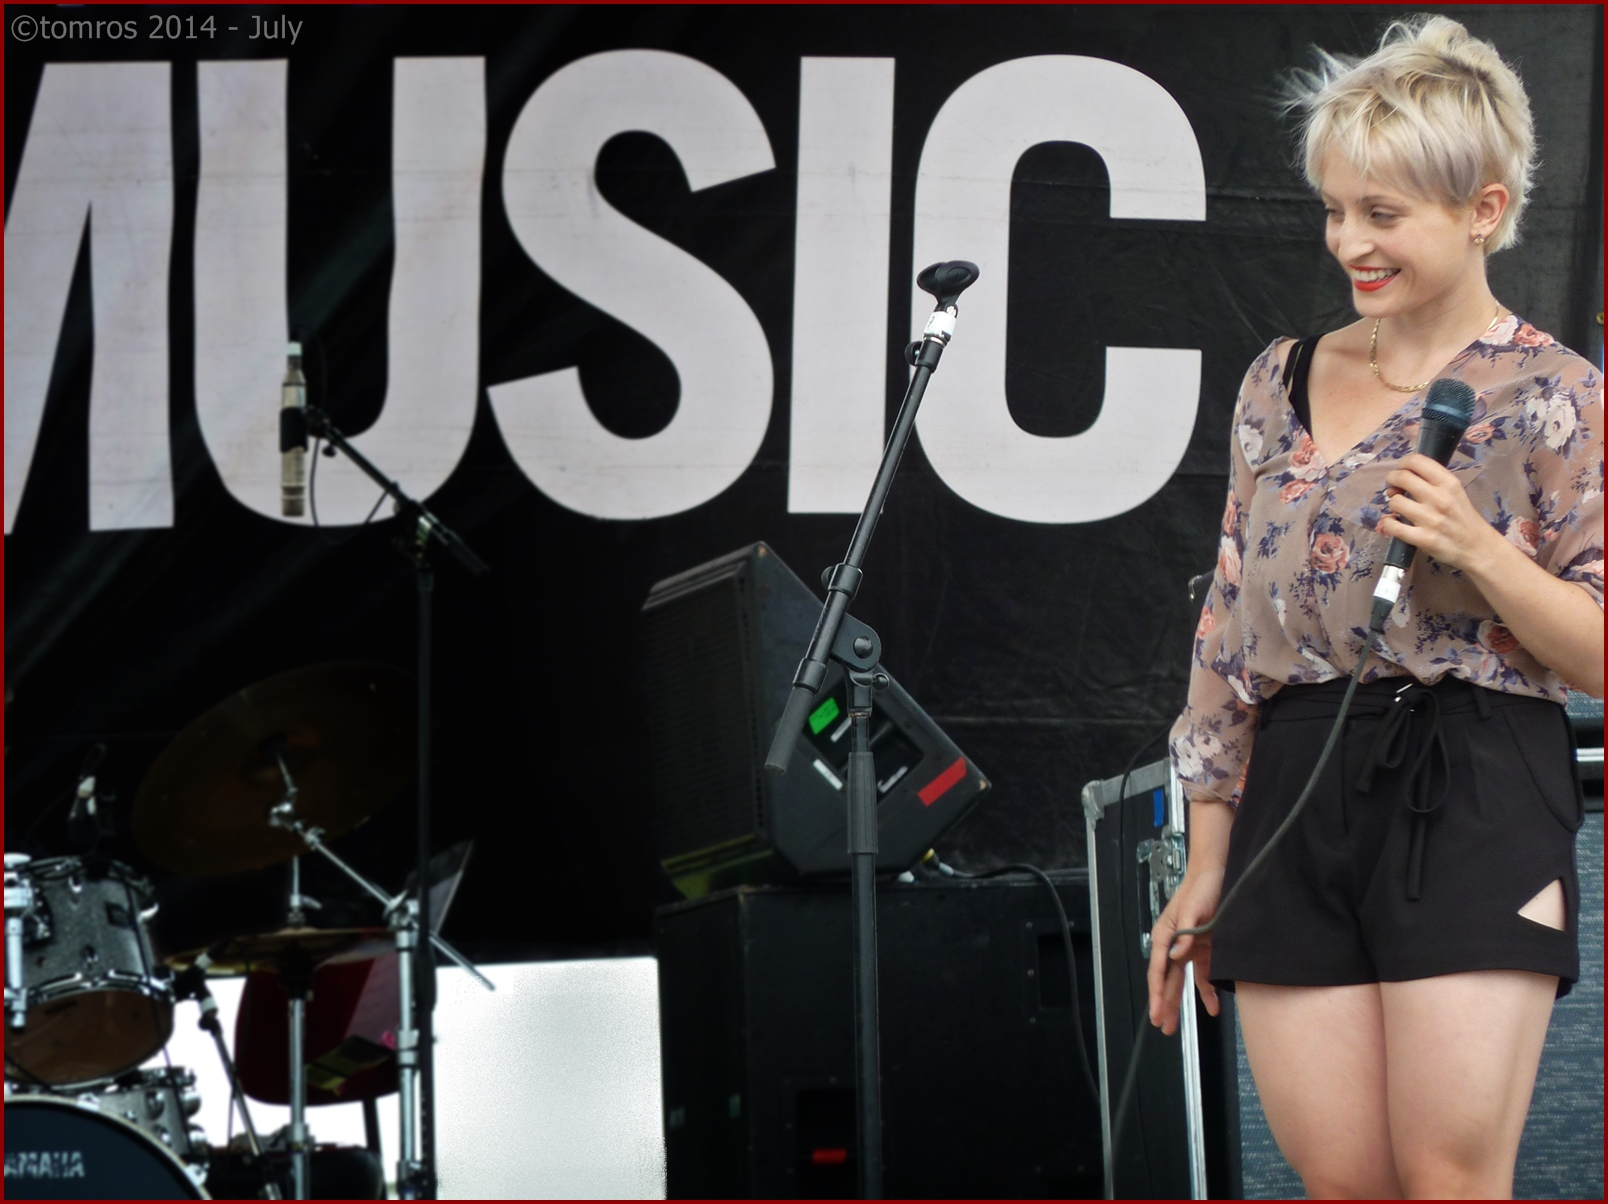 Barbra Lica at Beaches Jazz Festival. July 26, 2014